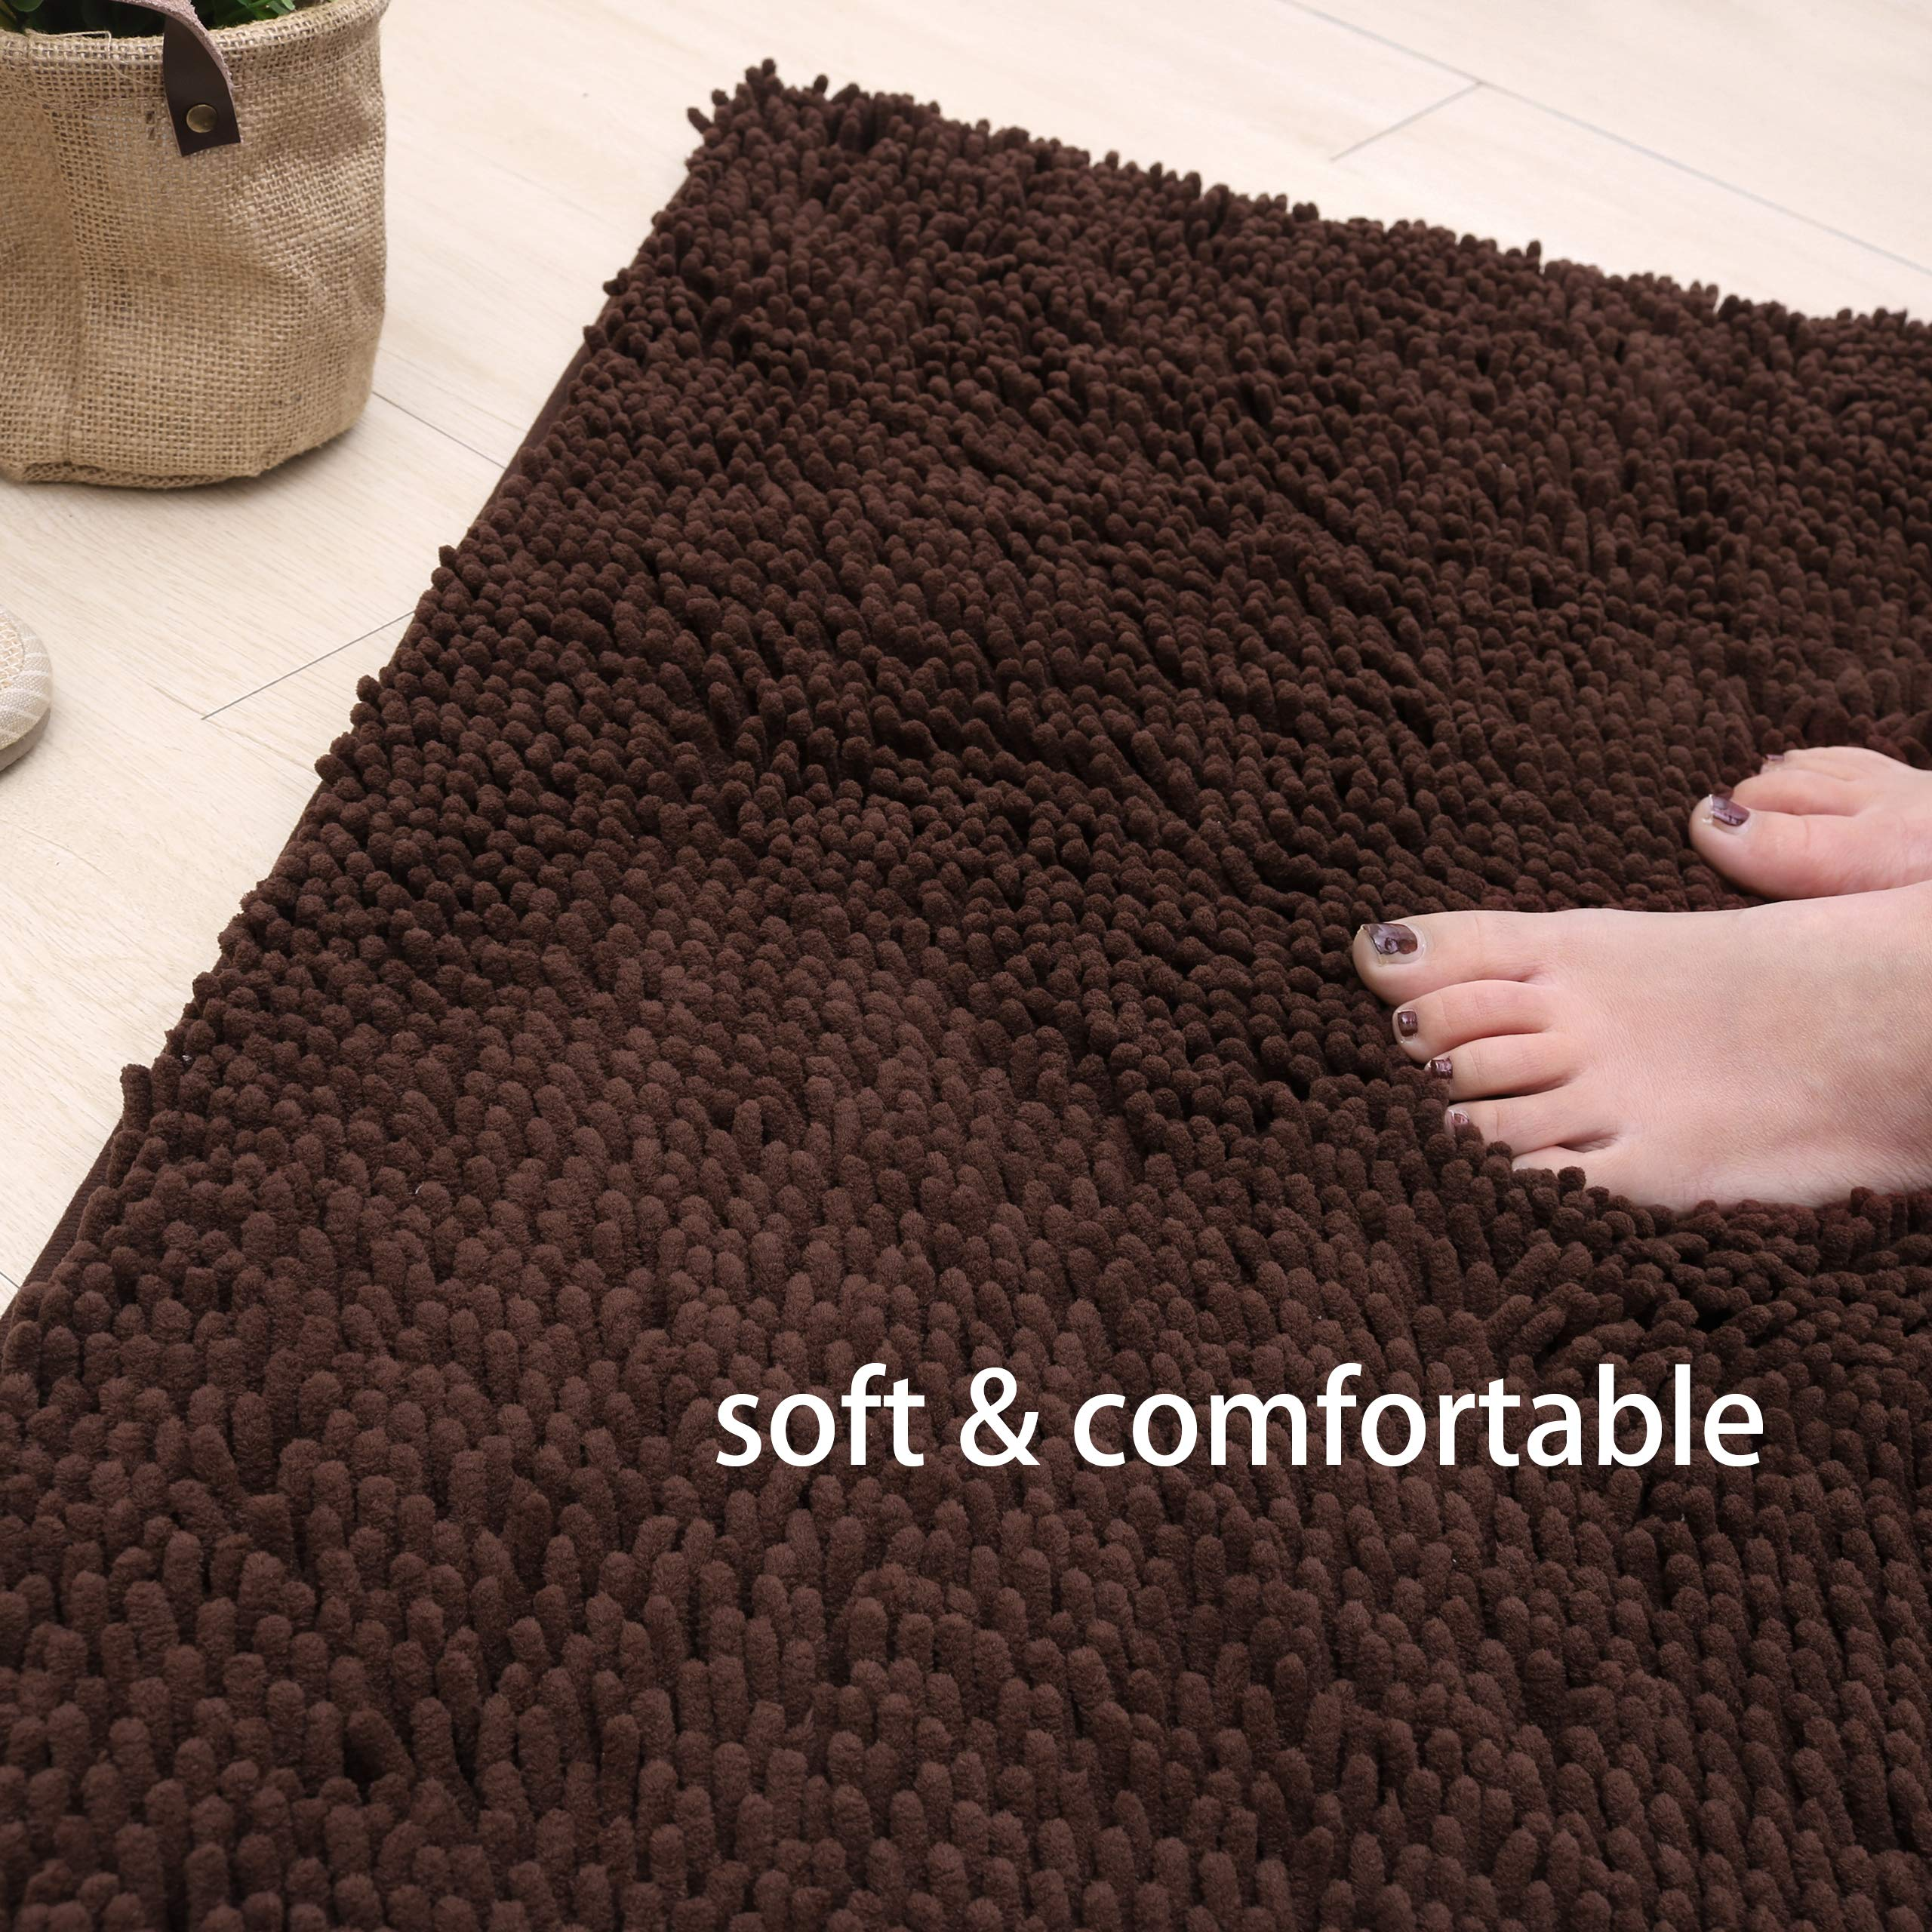 """X•SOAR-Soft and Cozy Chenille Bath Rugs,Non Slip Washable and Fast Dry Absorbent Shower Floor Mats for Bathroom (20""""×32"""" inch, Brown)"""